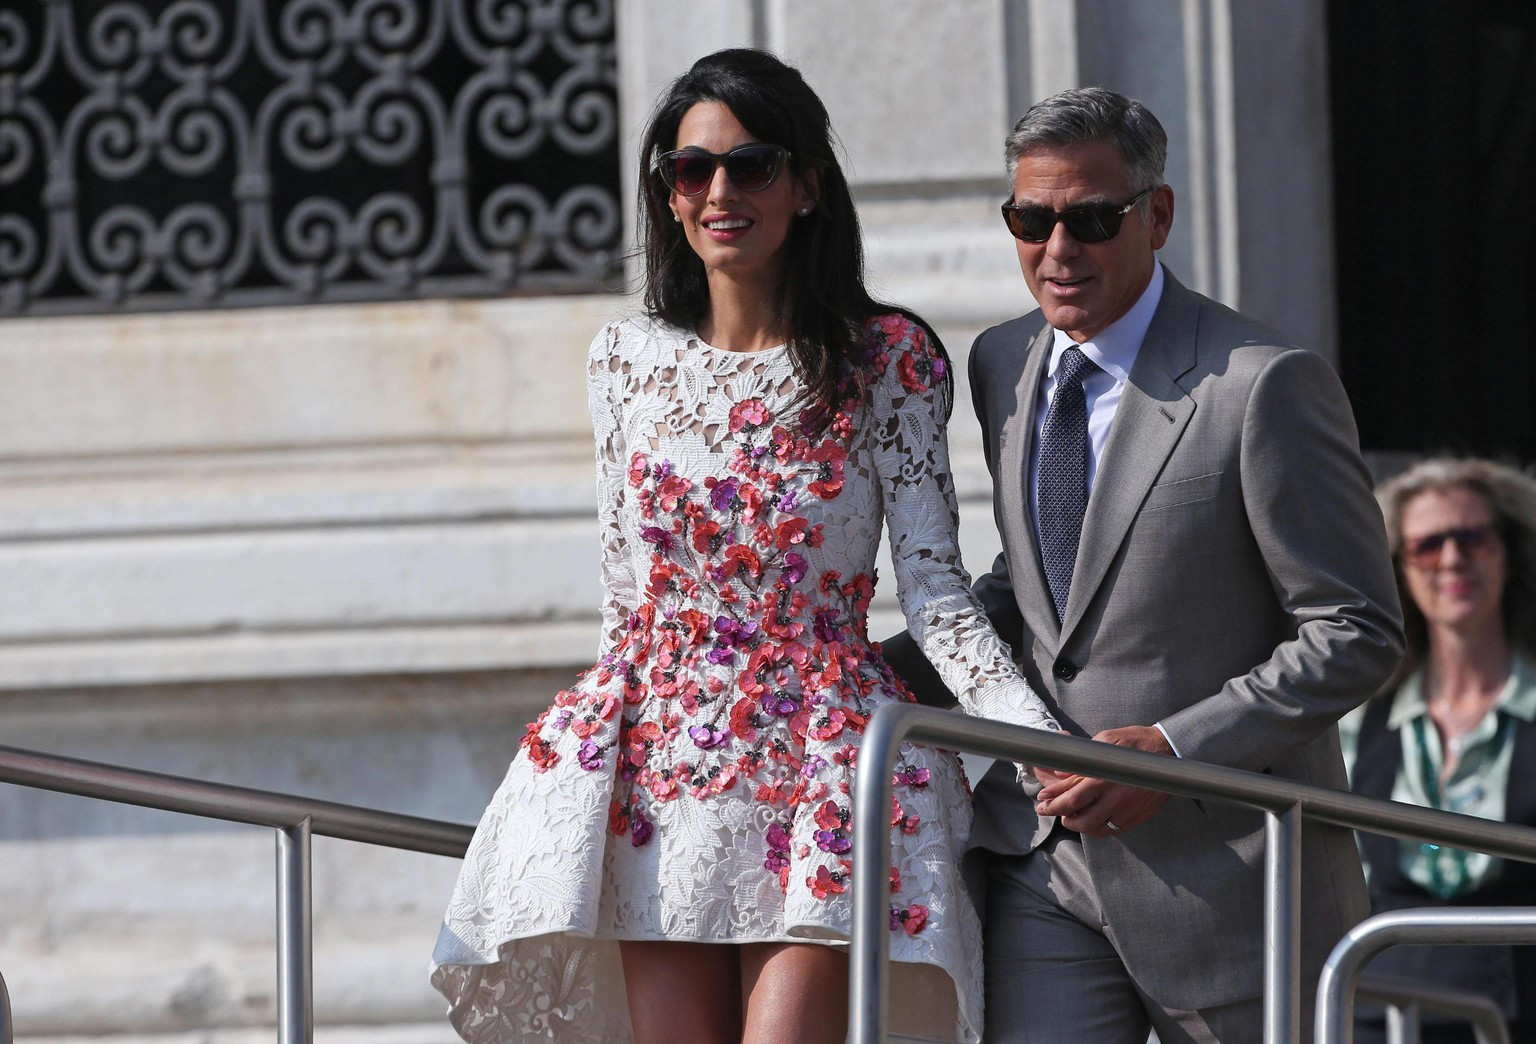 epa04421642 Newlywed couple, US actor George Clooney (R) and his wife Amal Alamuddin (C) get on board of a taxi boat, in Venice, Italy, 28 September 2014. Clooney and Alamuddin got married the day before at the Aman Resort hotel.  EPA/ALESSANDRO DI MEO